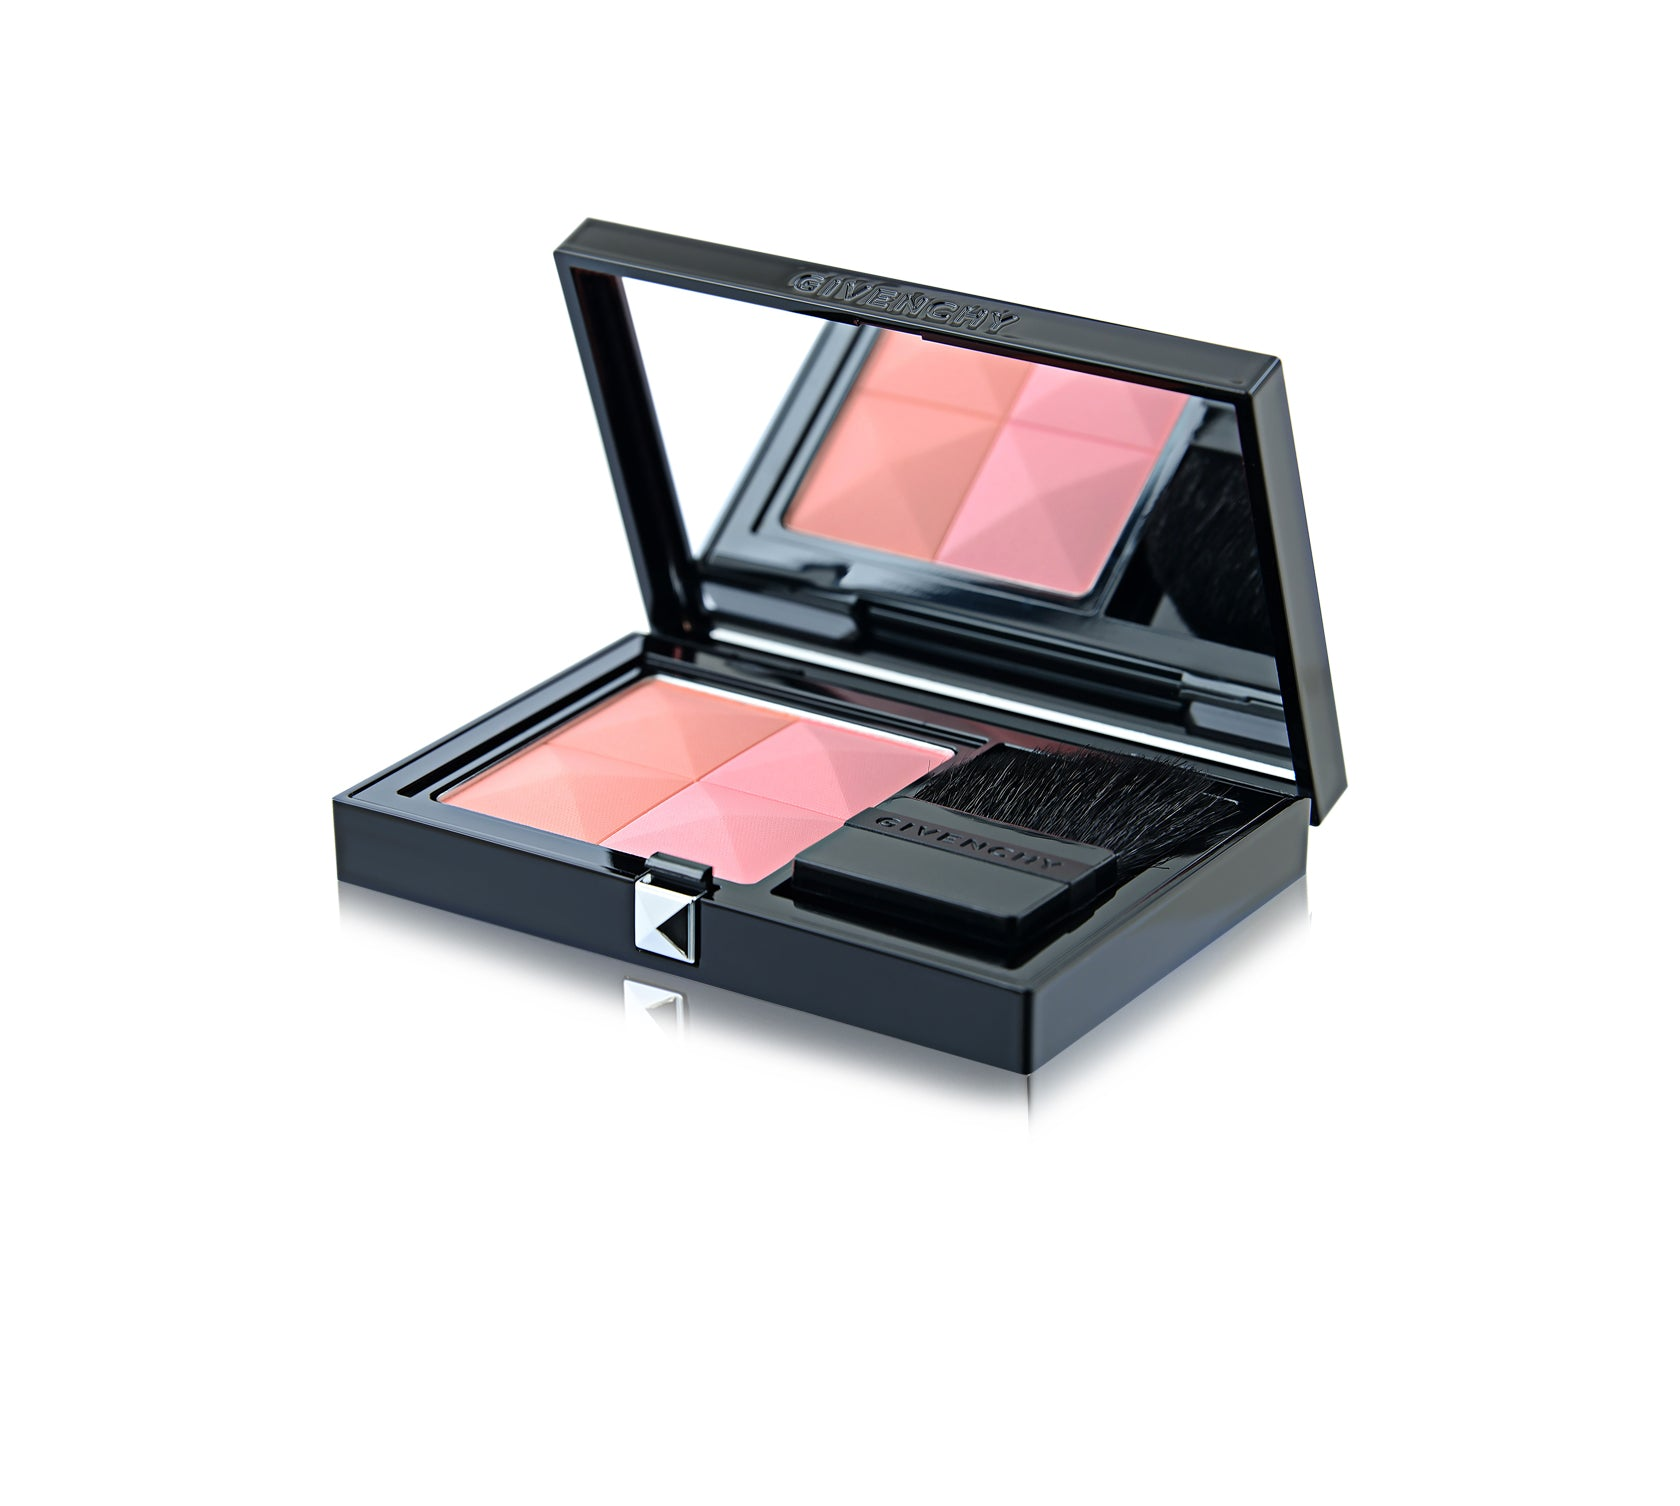 Prisme Blush Powder Blush Duo